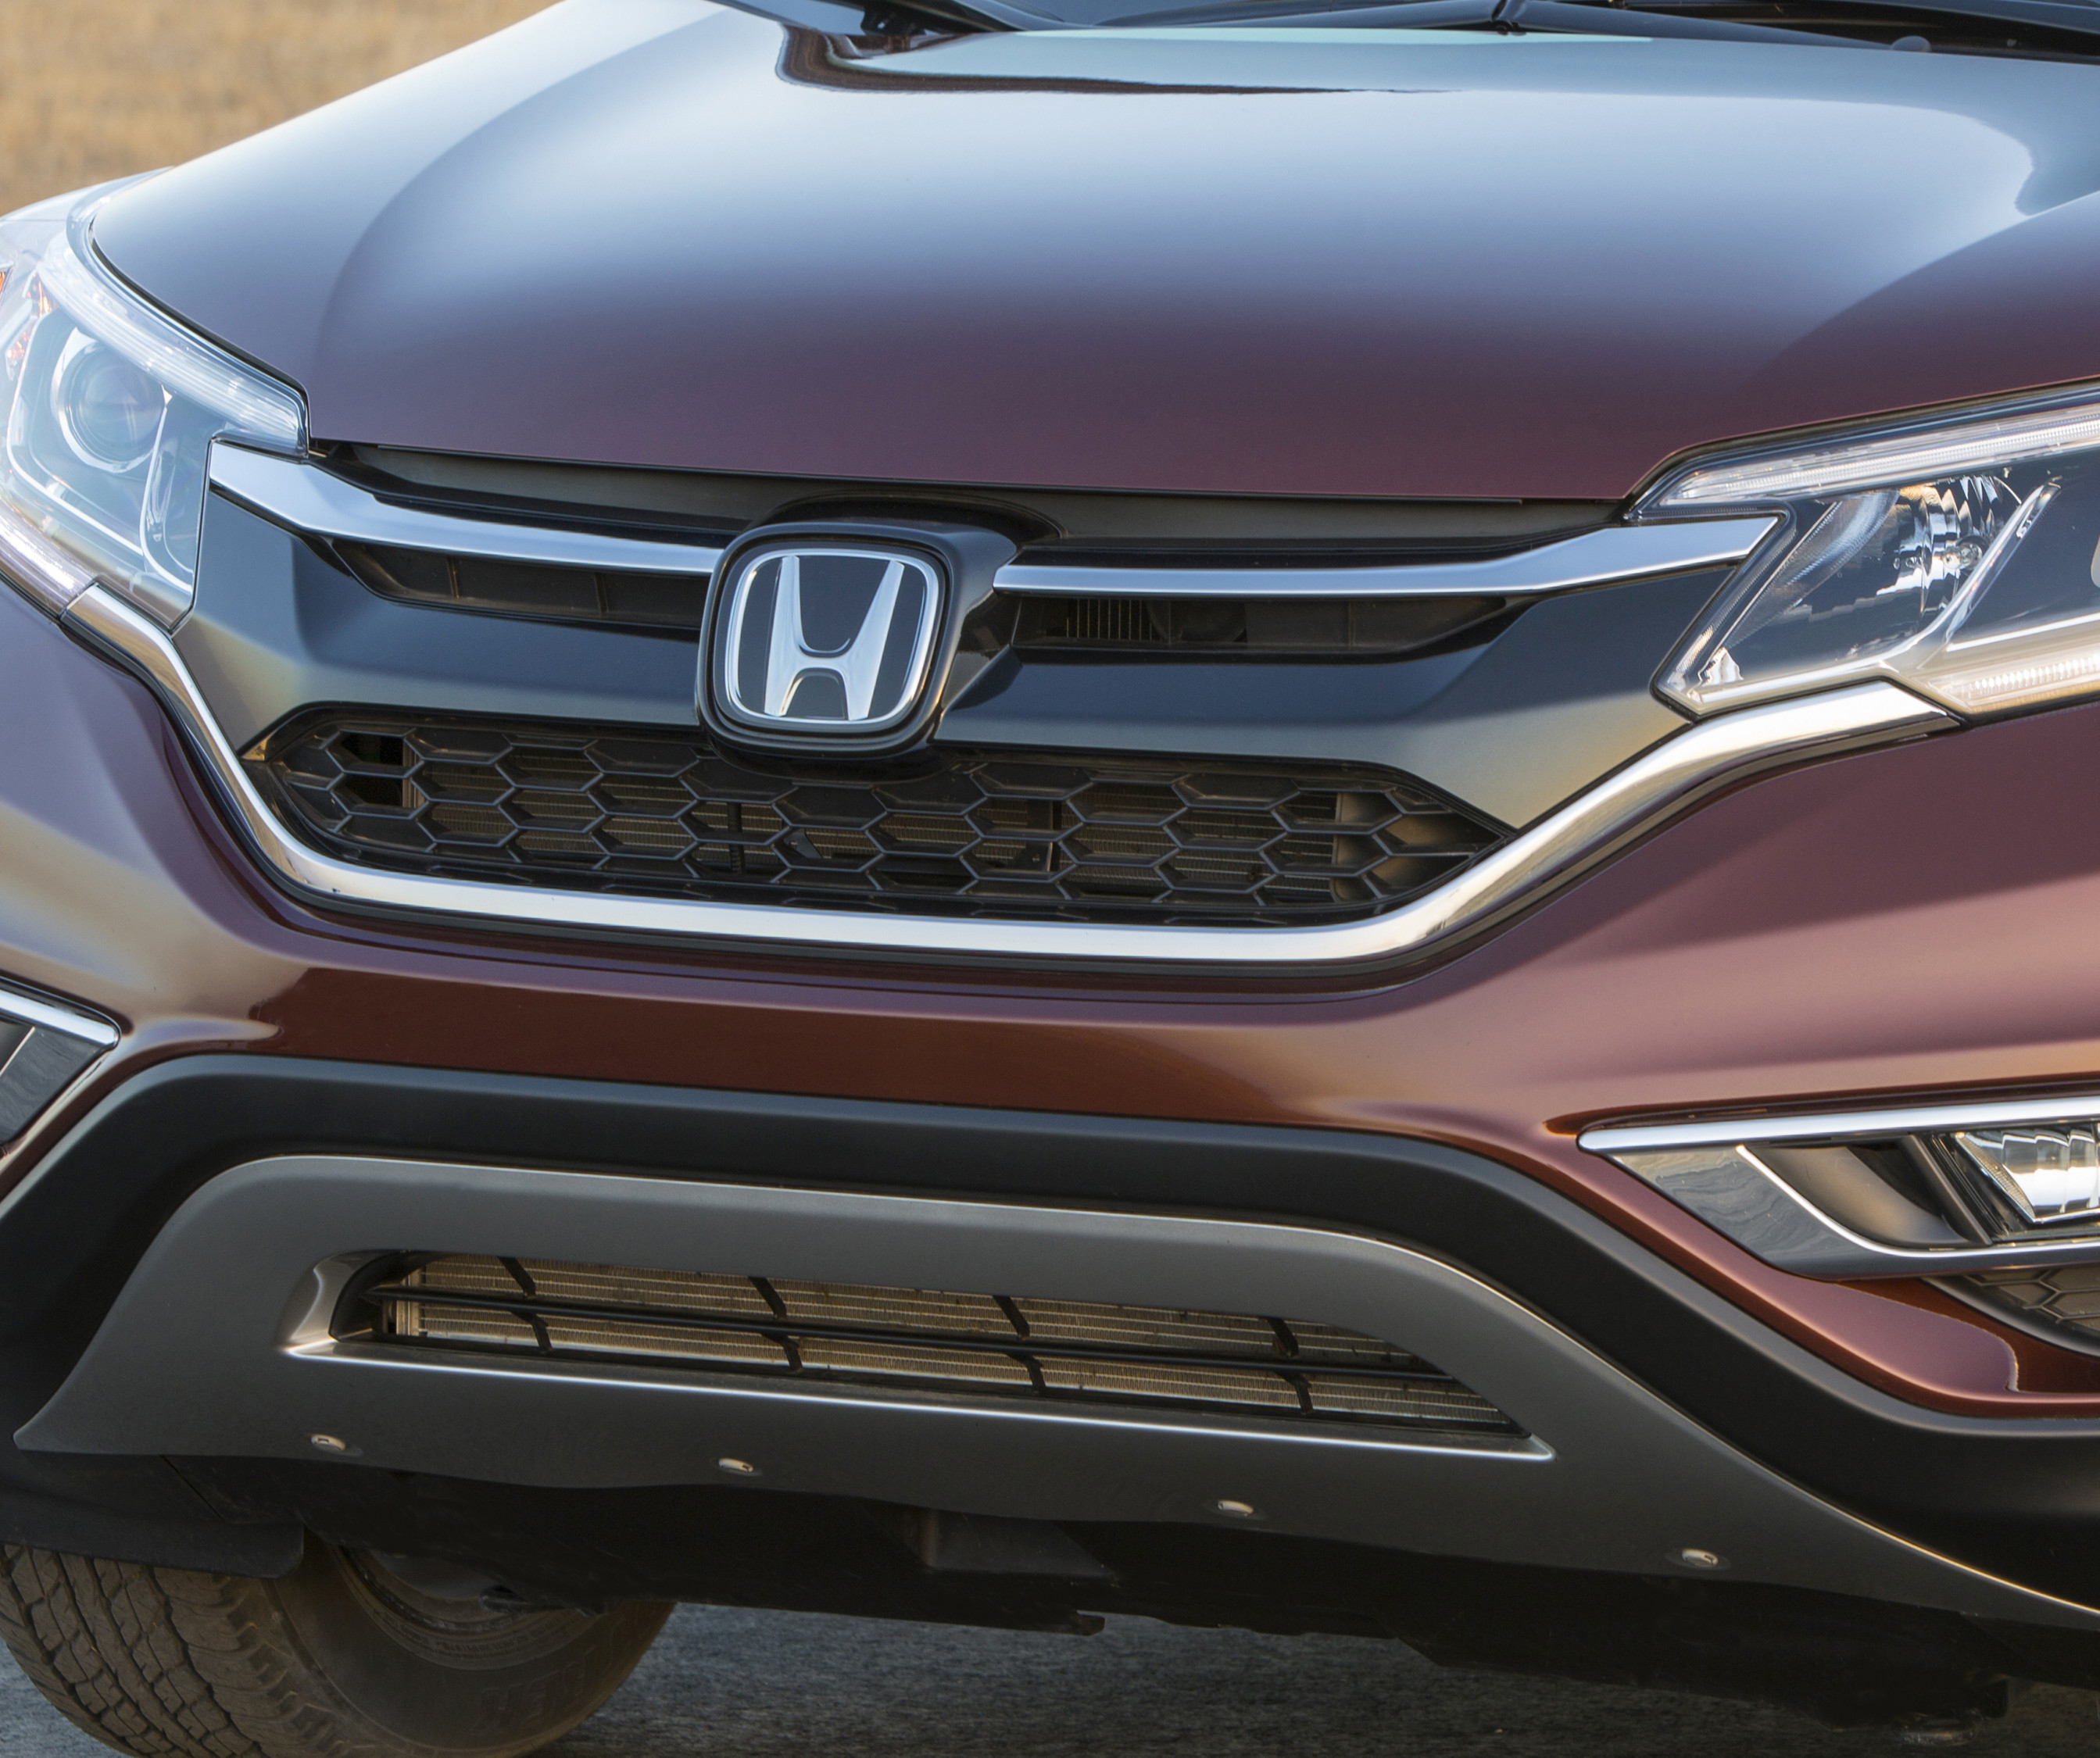 Honda profirst network up to 375 auto body shops locator for Honda in network